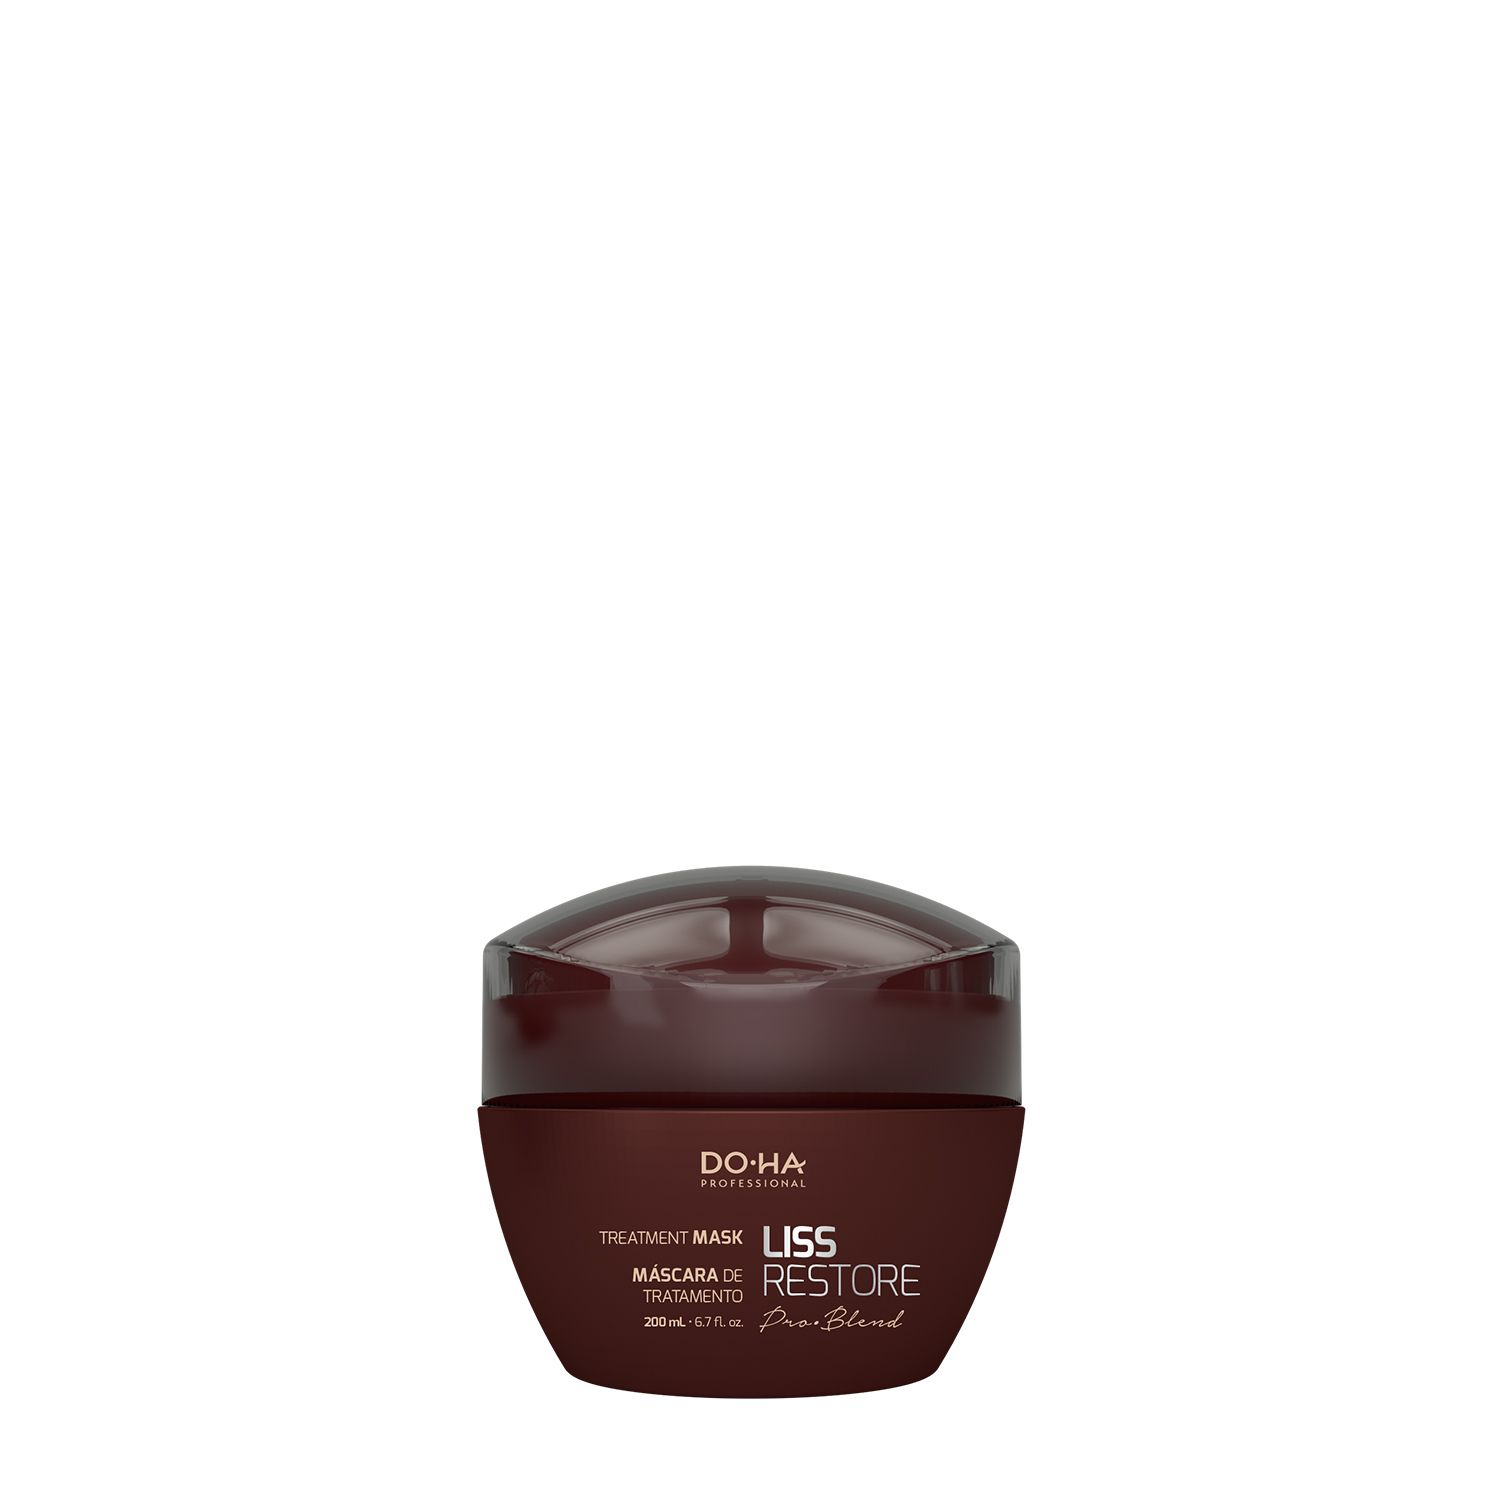 Liss Restore - Máscara - 200mL